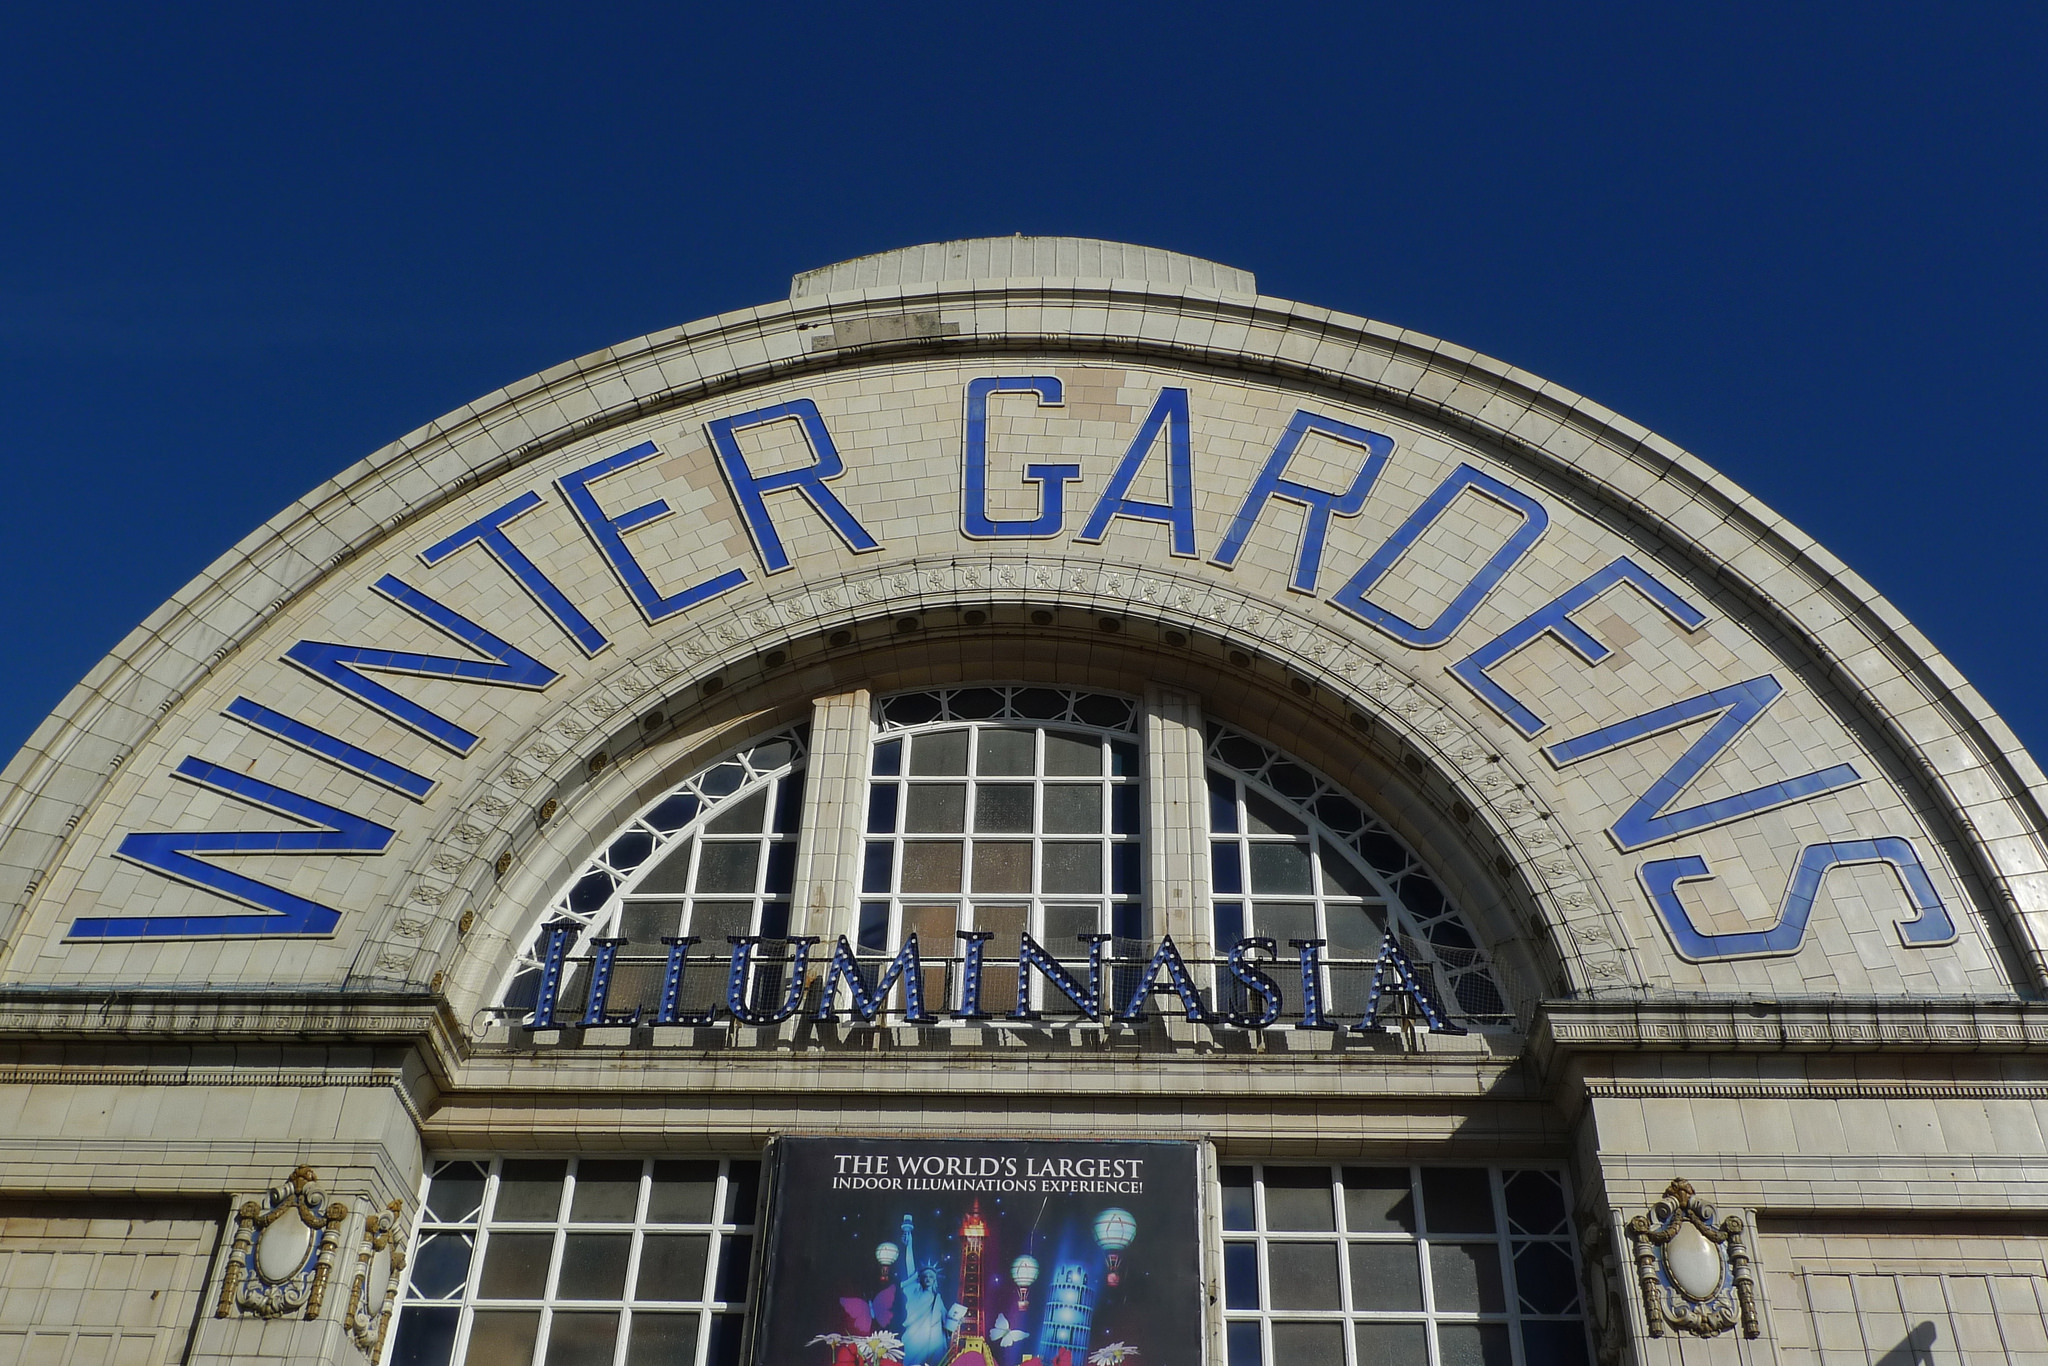 winter gardens public building in blackpool thousand wonders